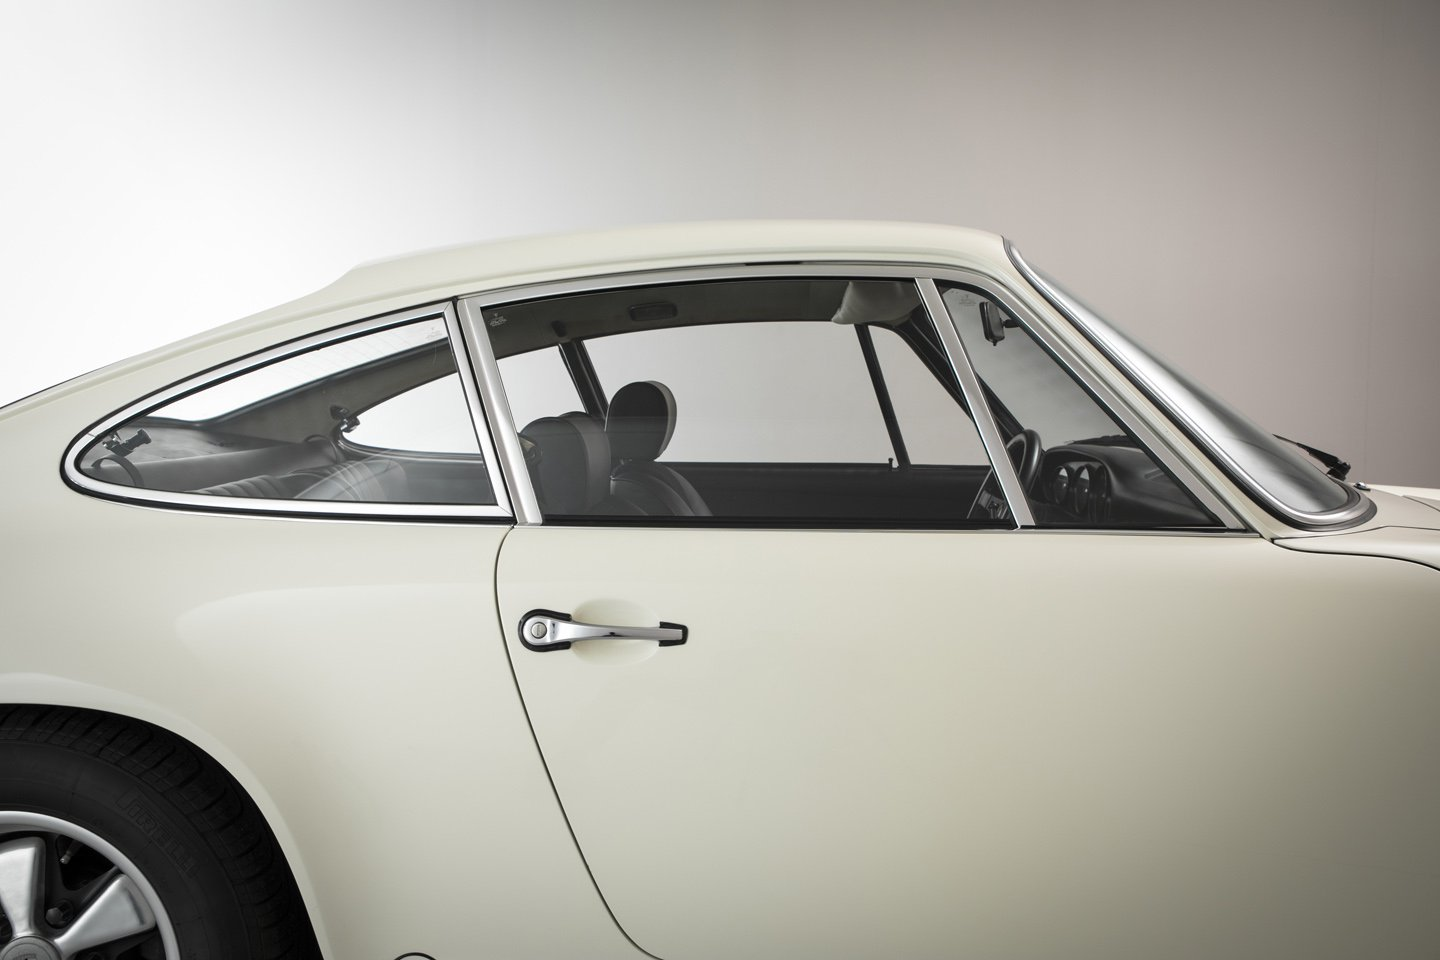 1973 Porsche 911 2.7 RS Touring Is An Air-Cooled Blue-Chip Investment ...